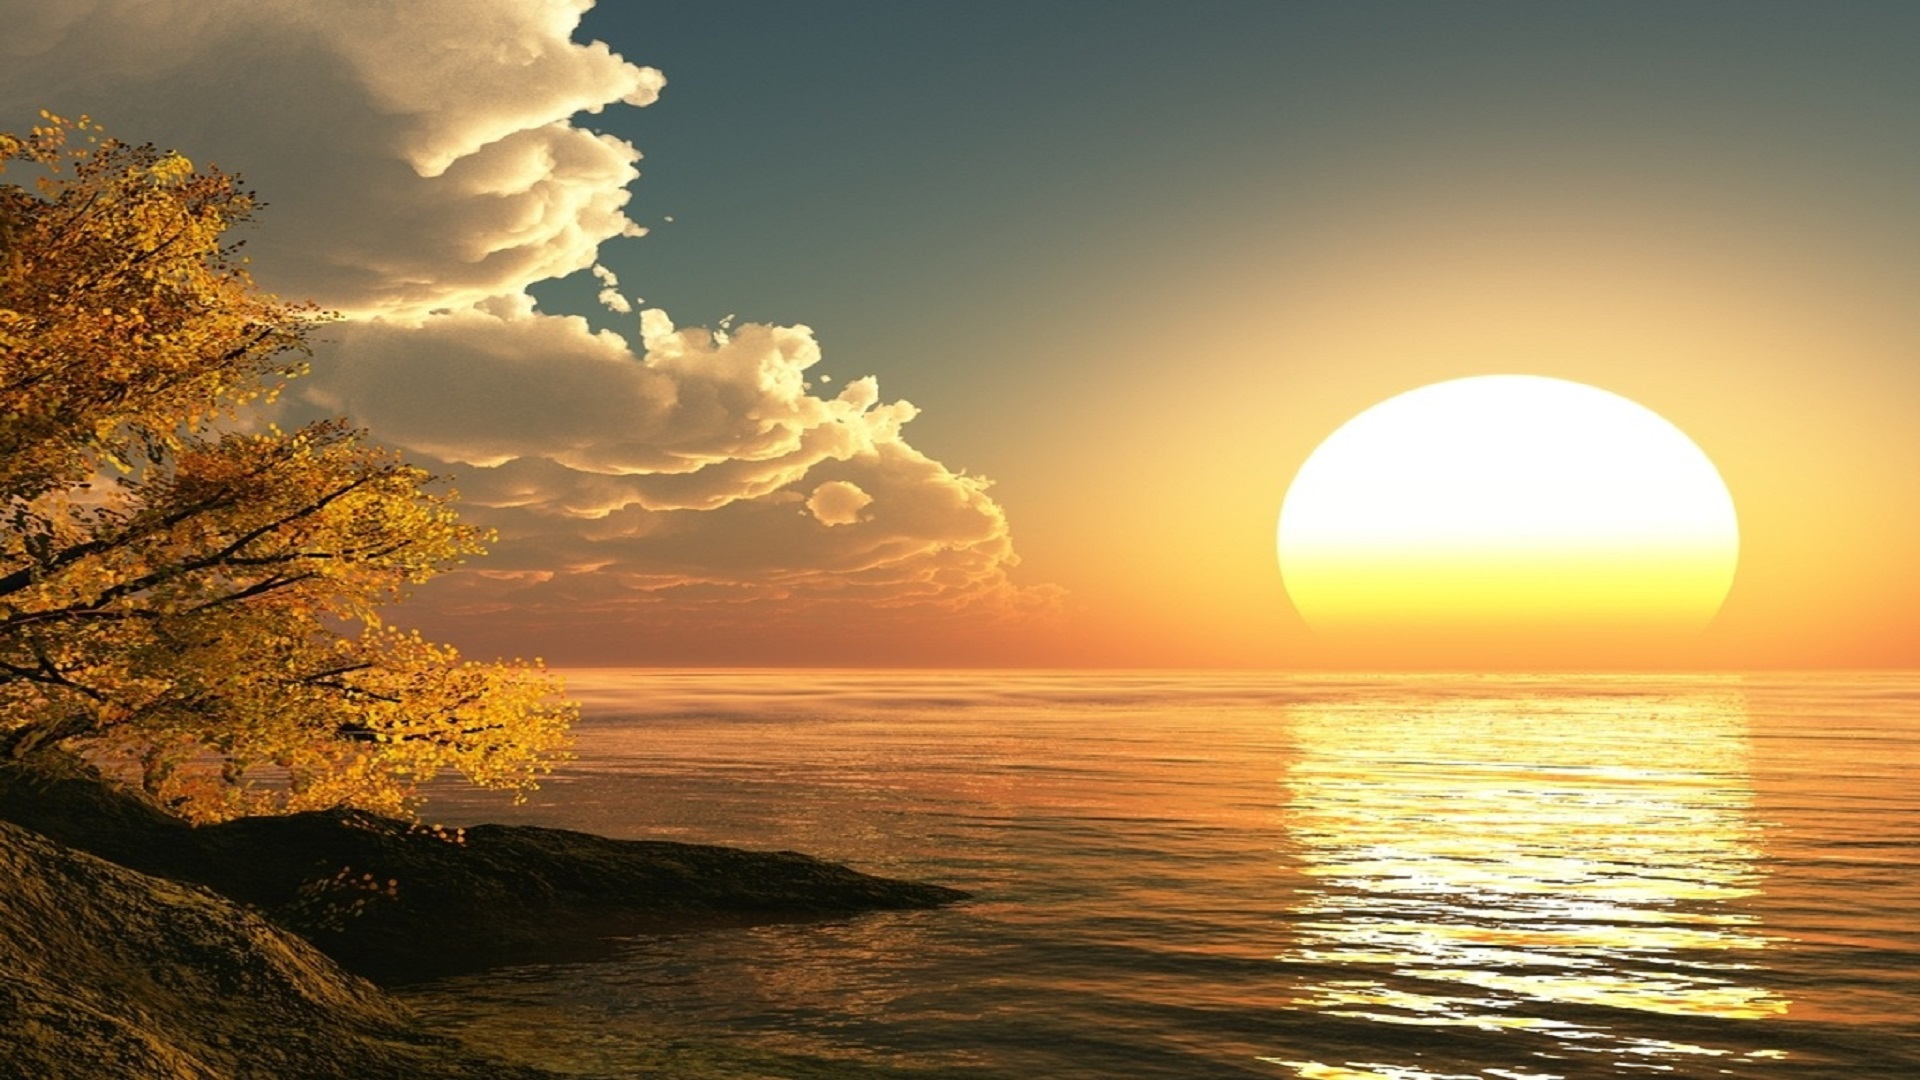 Sun-rising-hd-free-wallpaper-for-desktop